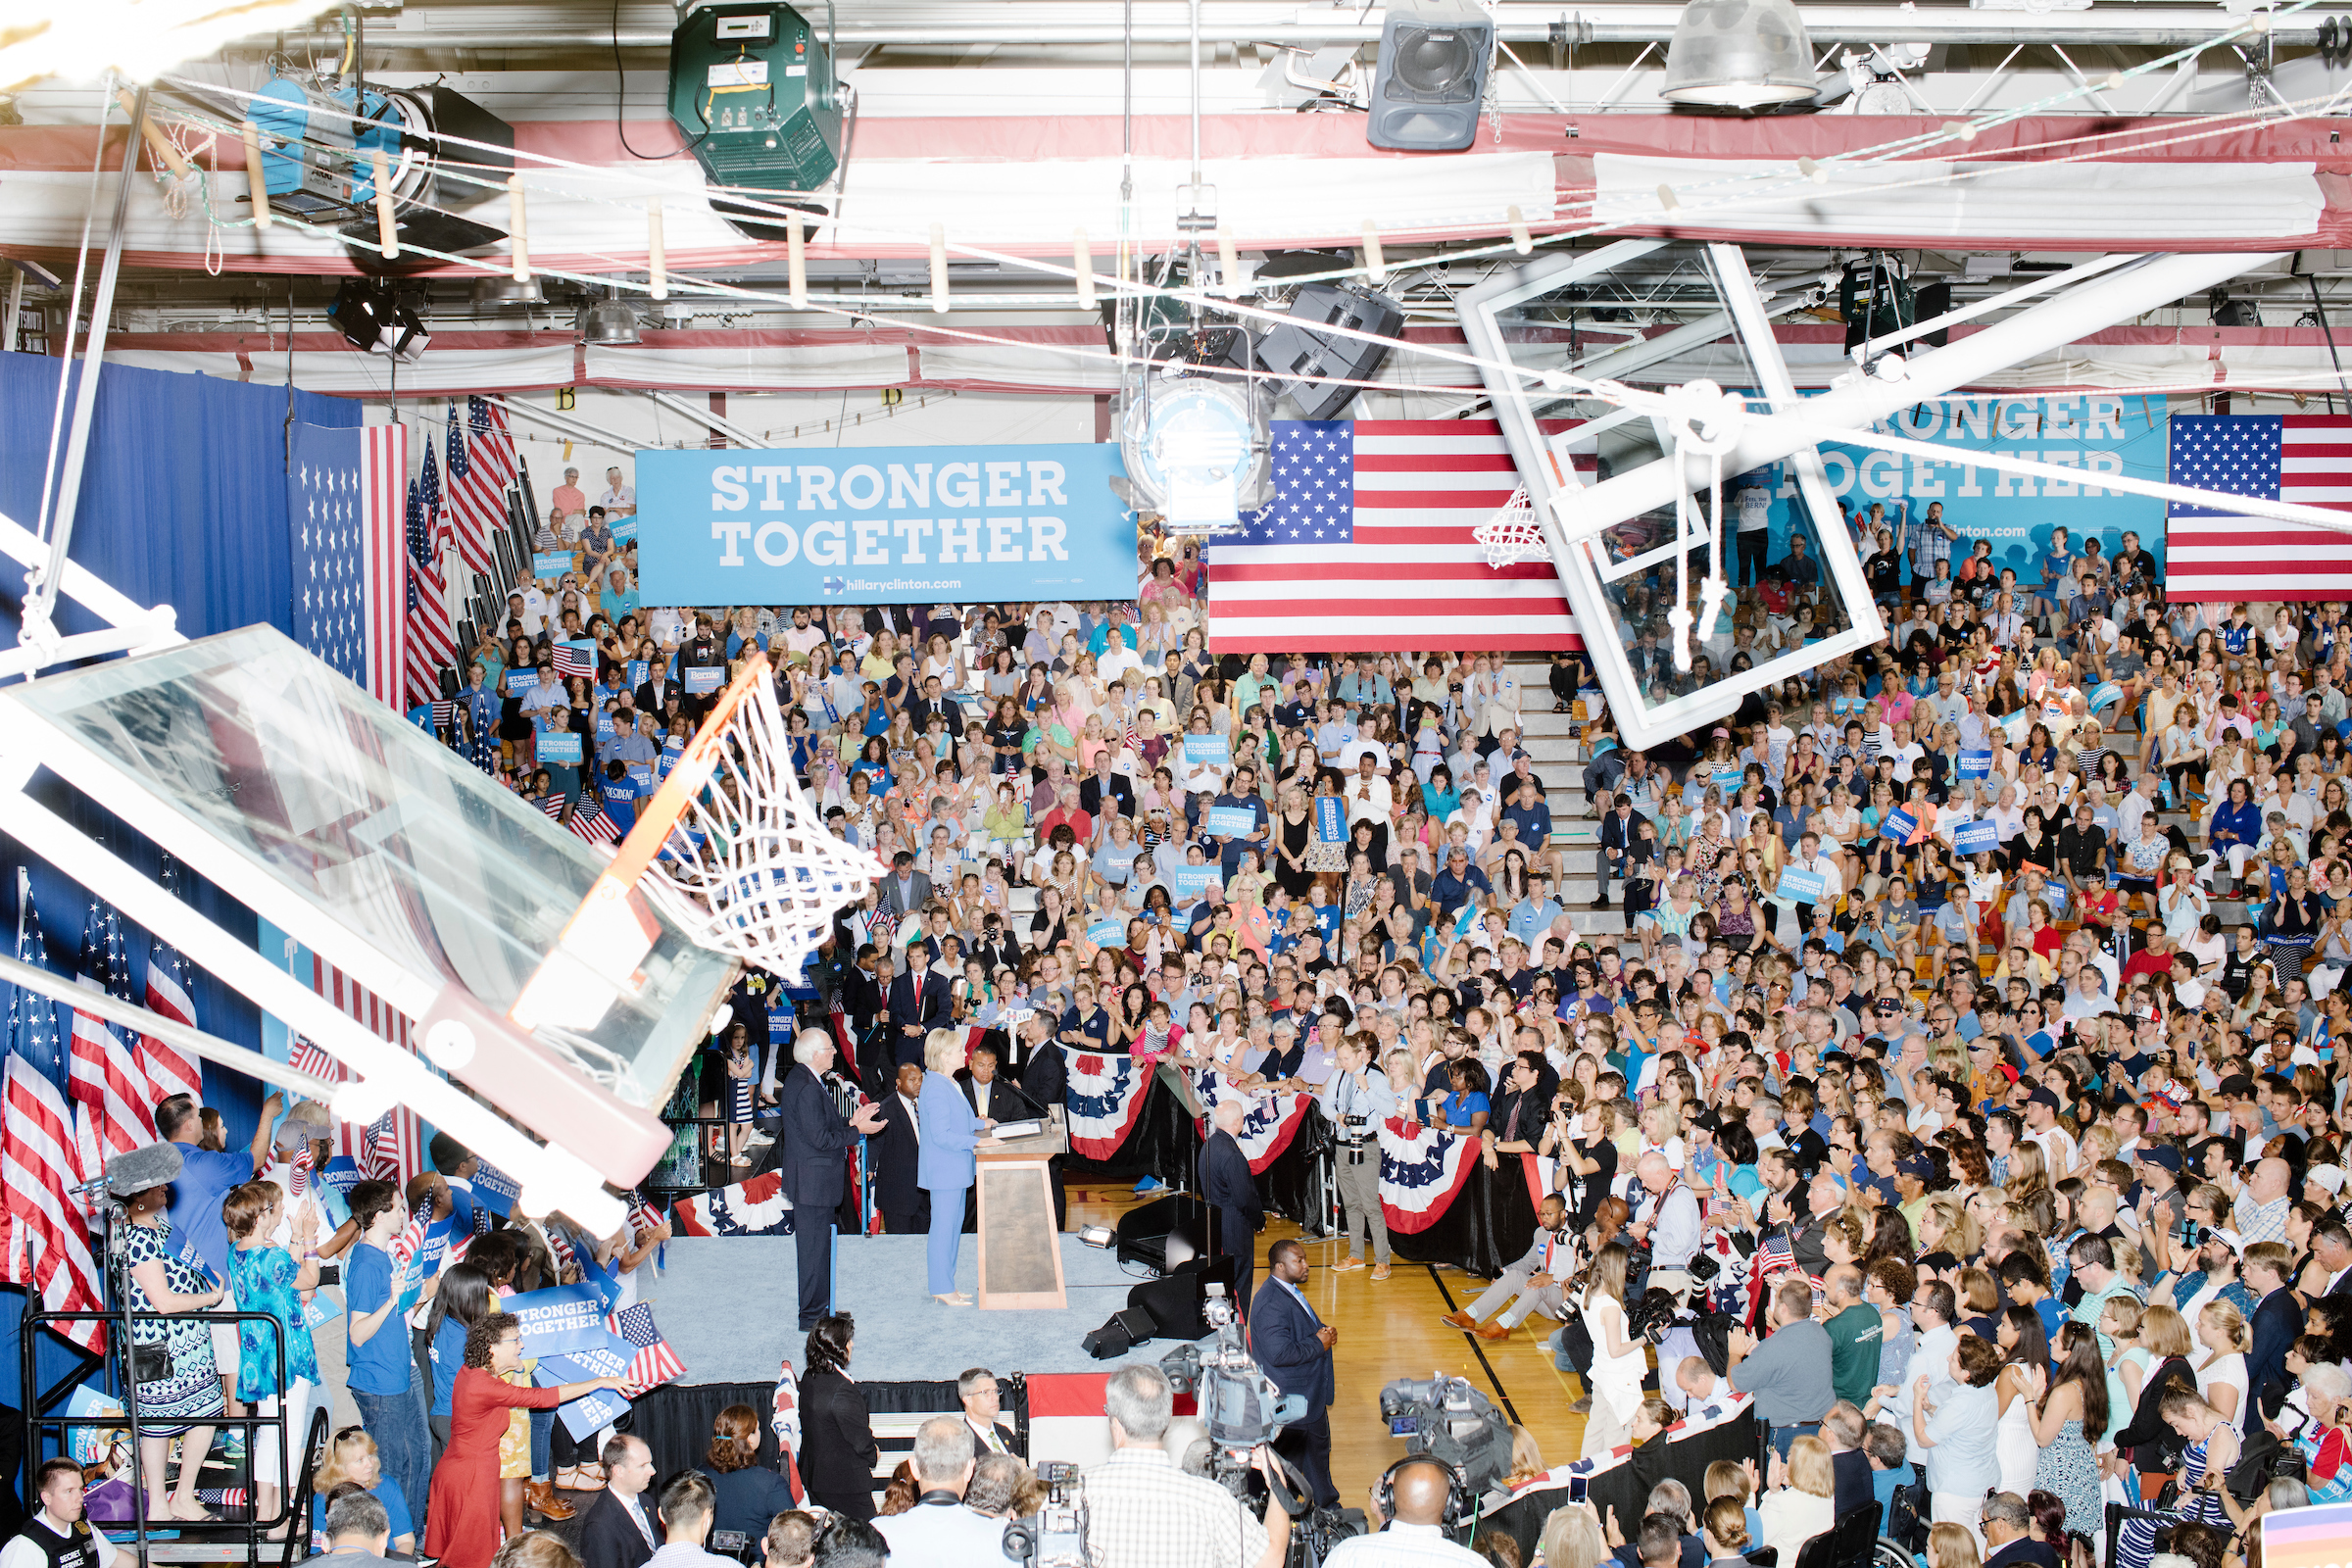 Hillary Clinton speaks during a rally while former rival Bernie Sanders stands on stage at Portsmouth High School in Portsmouth, New Hampshire, on July 12, 2016. At the rally, Sanders officially endorsed Clinton as the Democratic nominee for president.